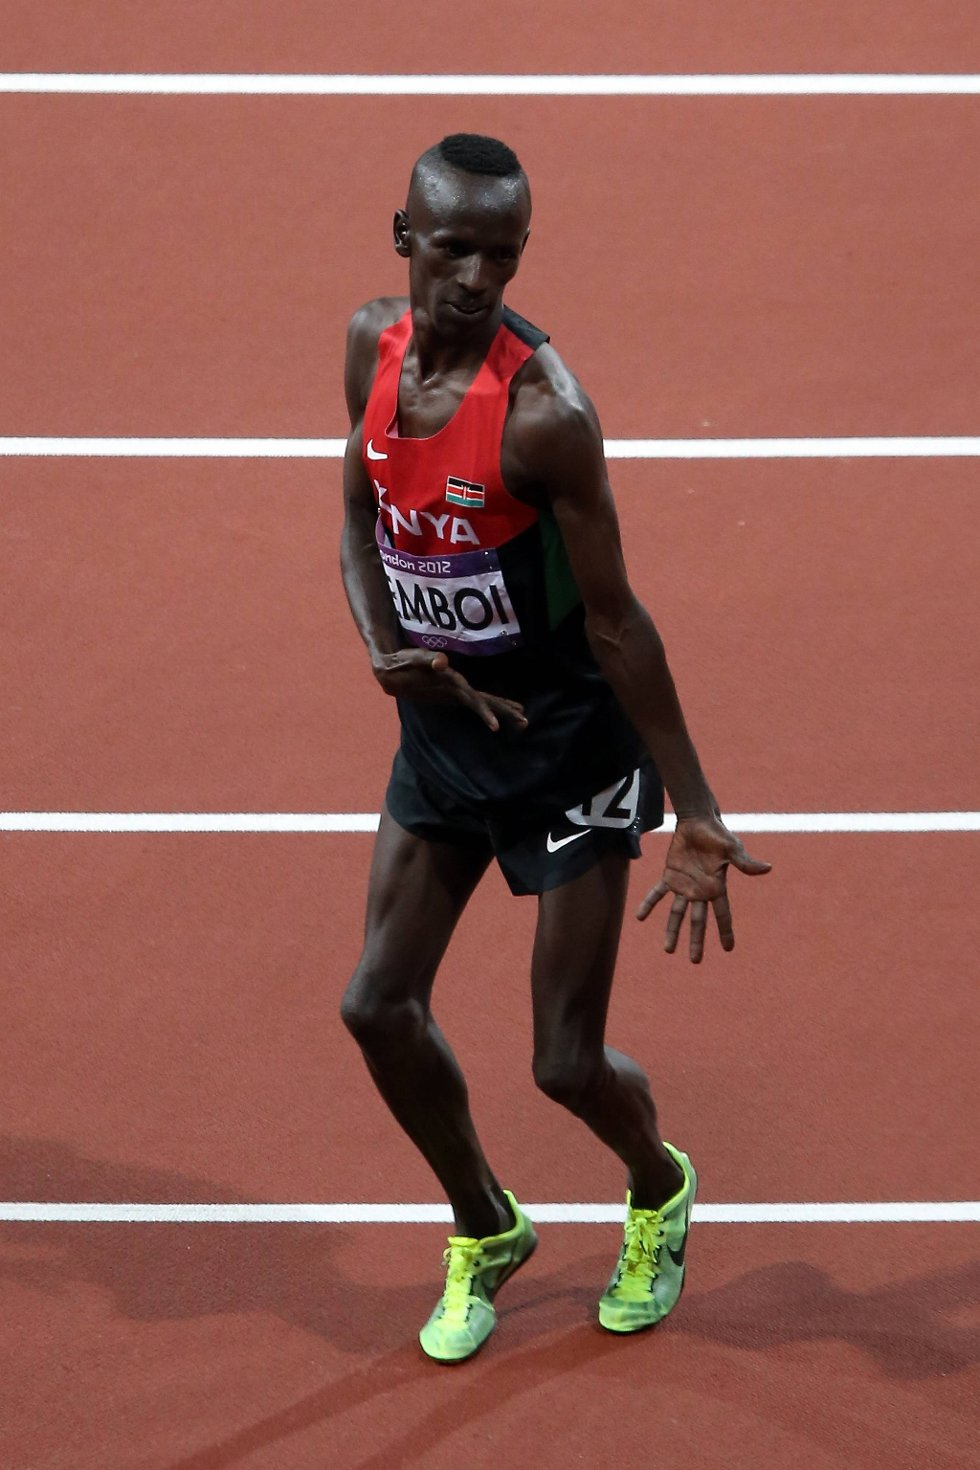 Huffda. Hold deg til 3.000 meter hinder du, Ezekiel Kemboi, for danse kan du åpenbart ikke. (Foto: Quinn Rooney, Getty Images/All Over Press/ANB)